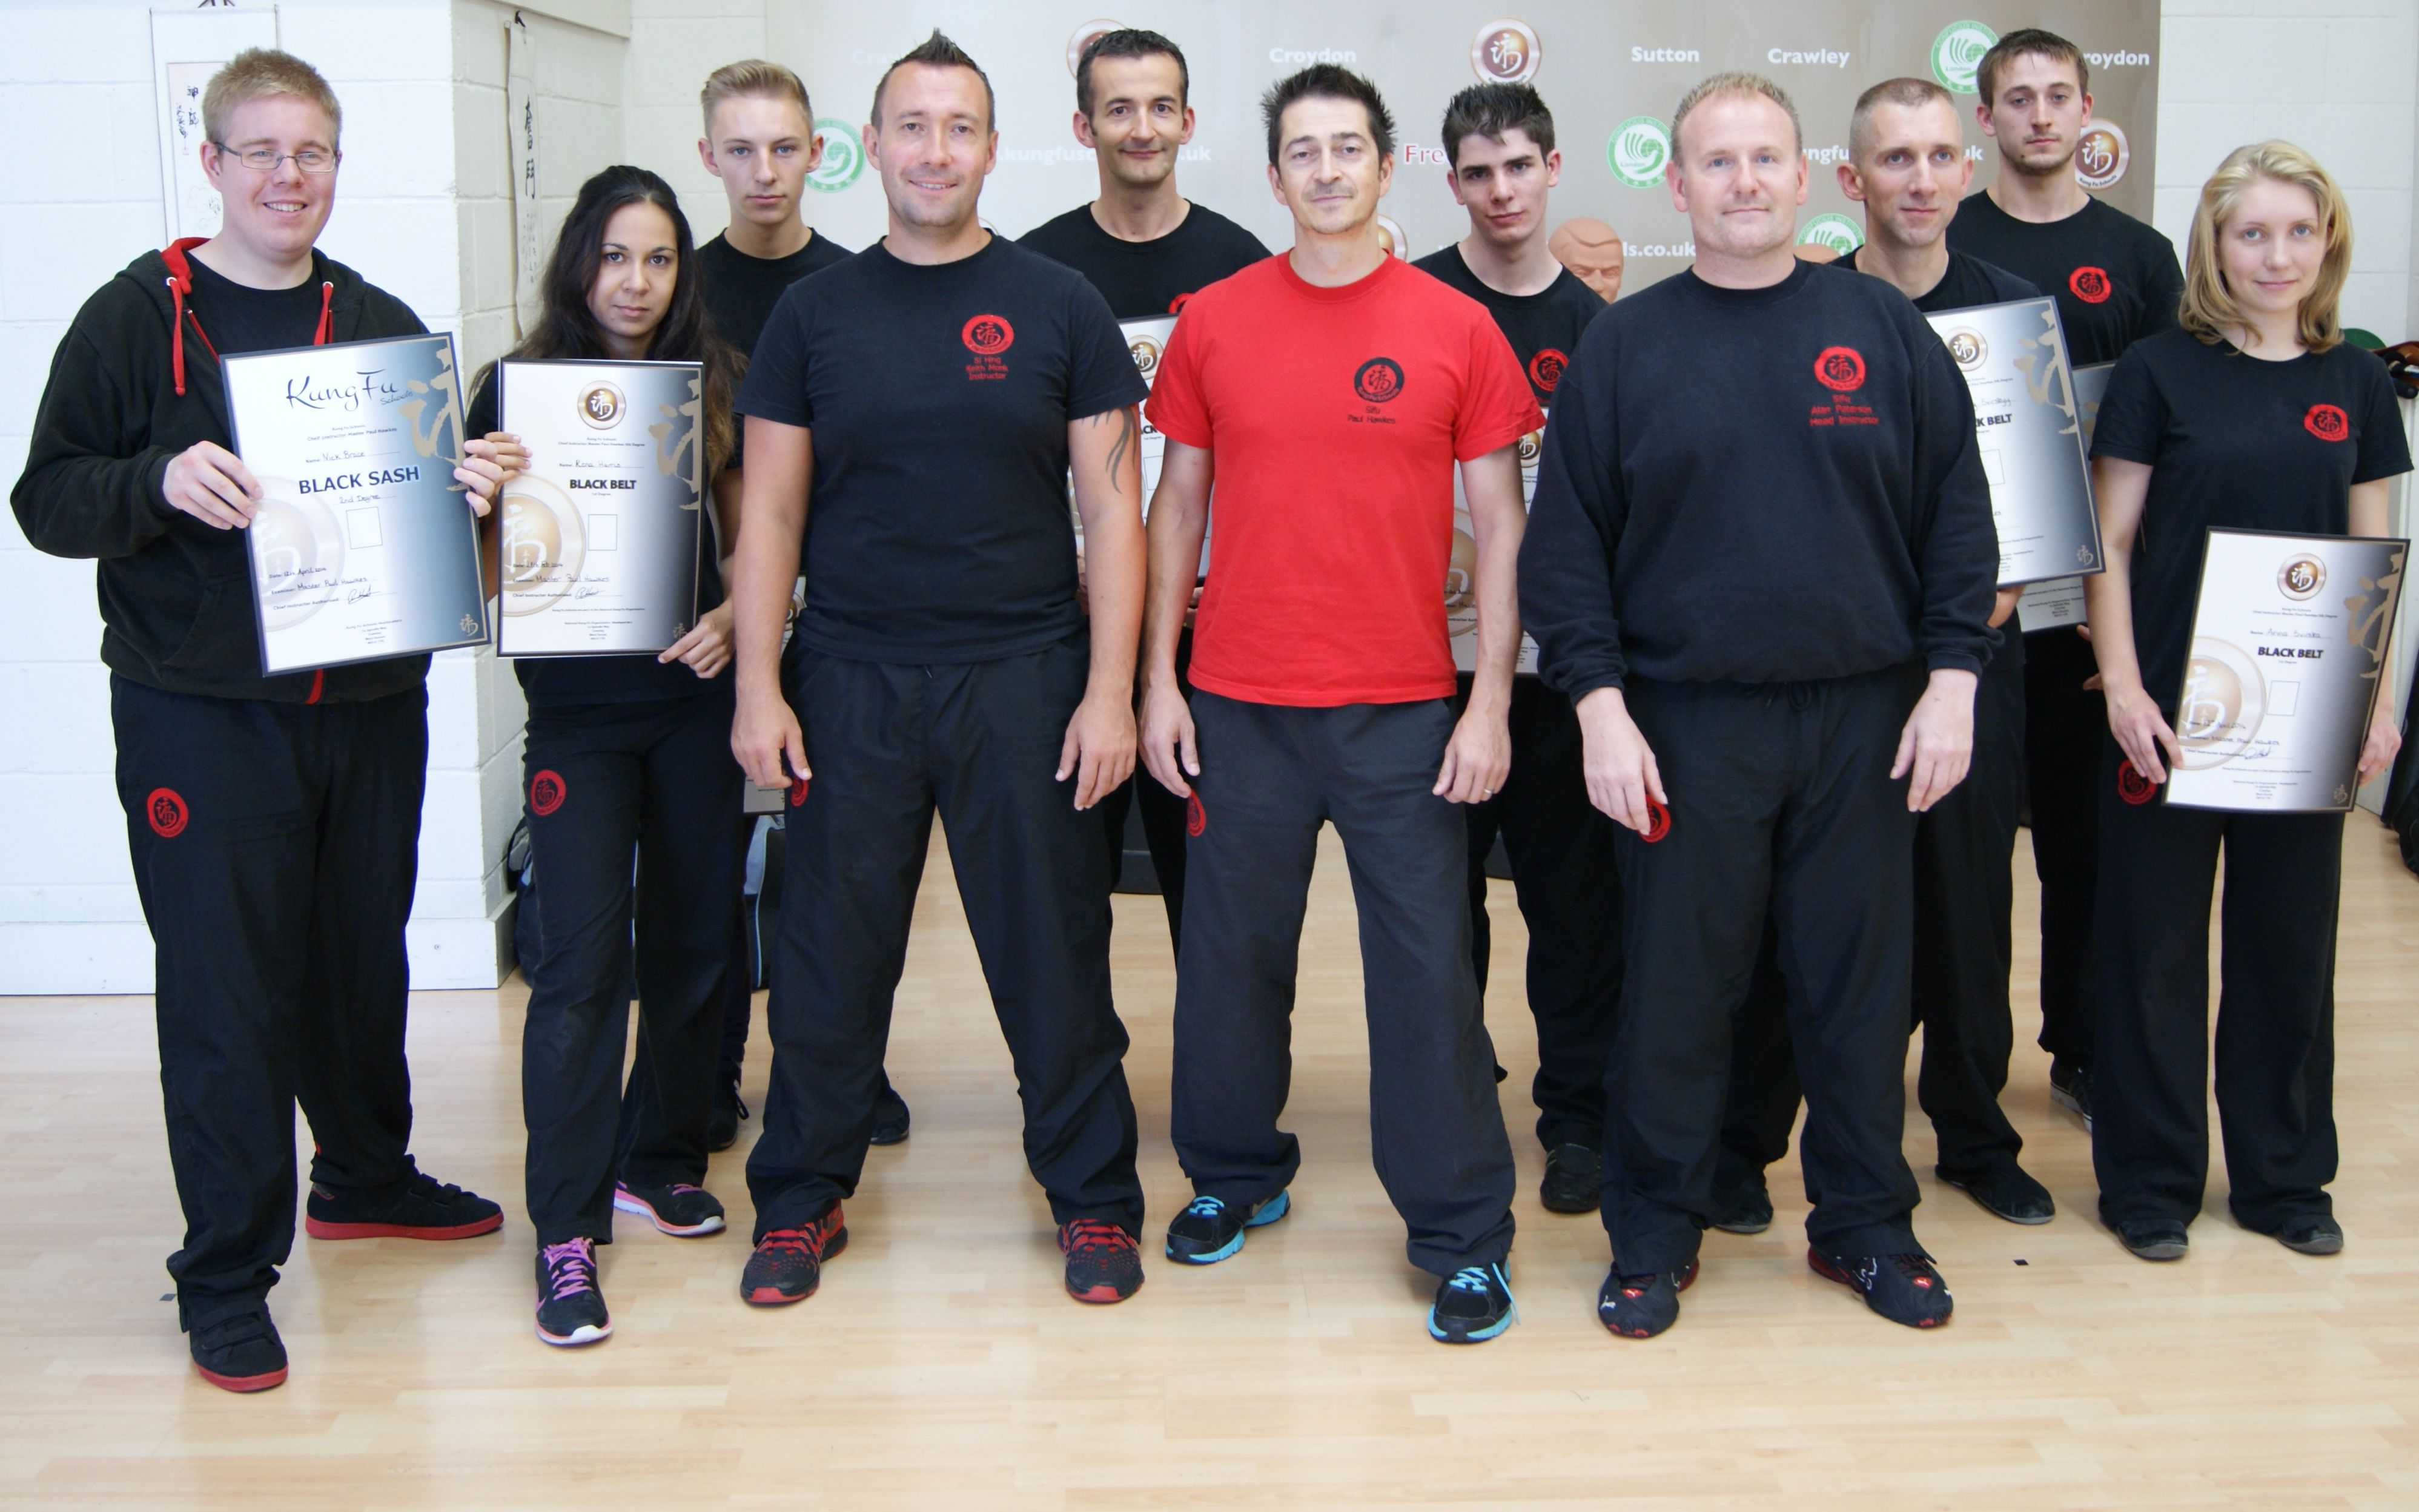 Adult Students Of Kung Fu Schools Croydon And Sutton Receiving Their Degree Certificates